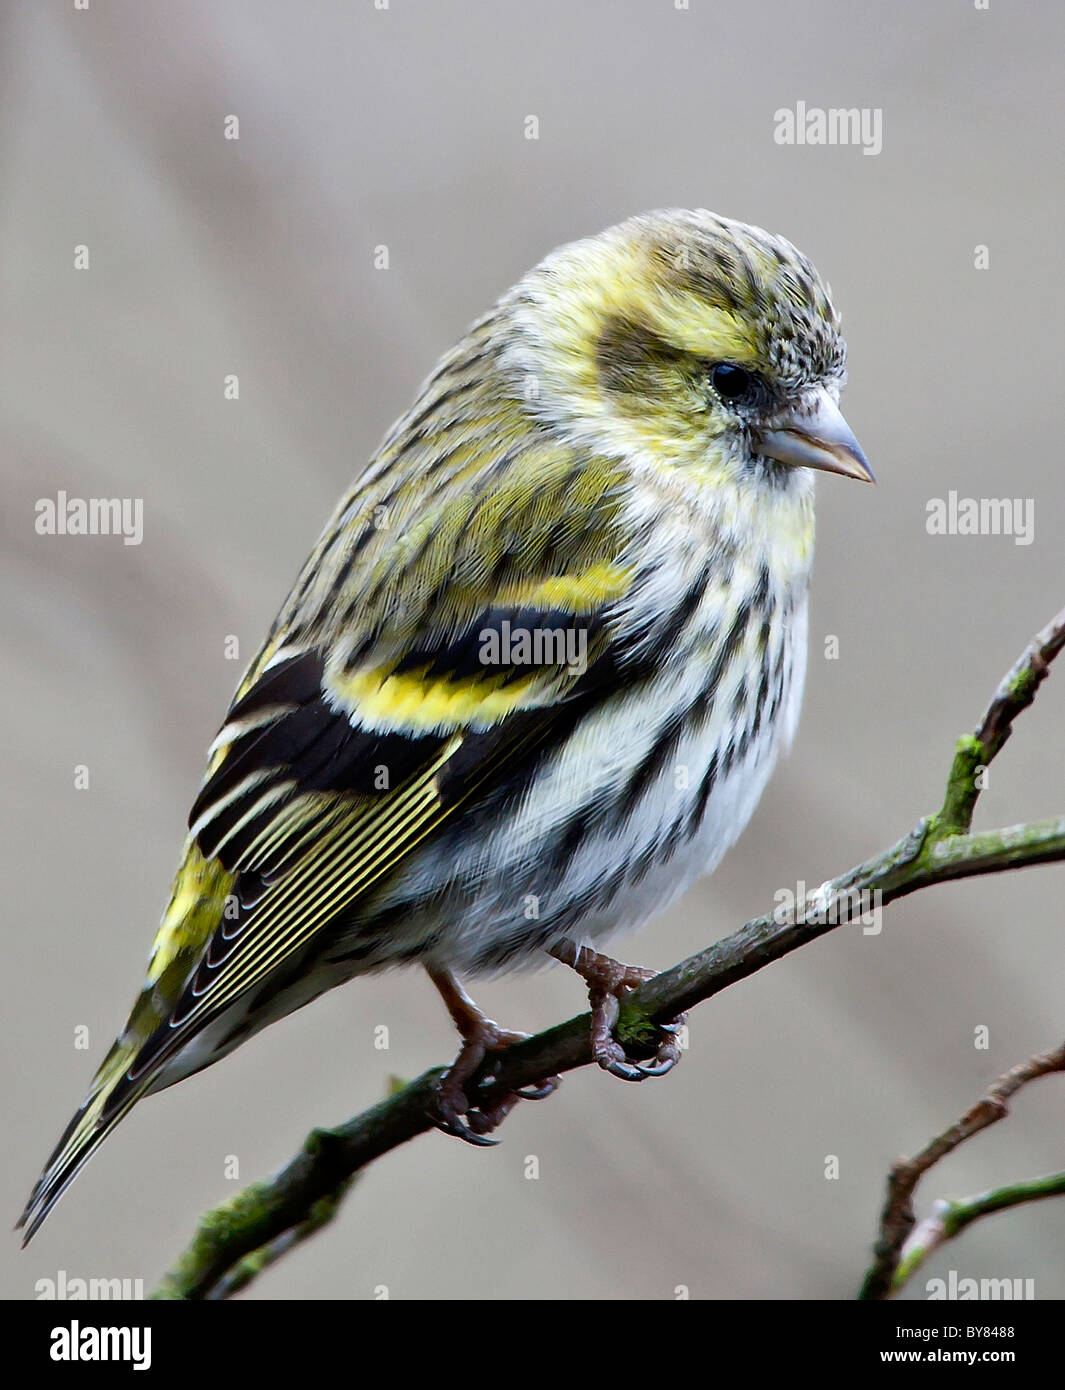 Female Siskin, Carduelis spinus, resting in a tree. - Stock Image